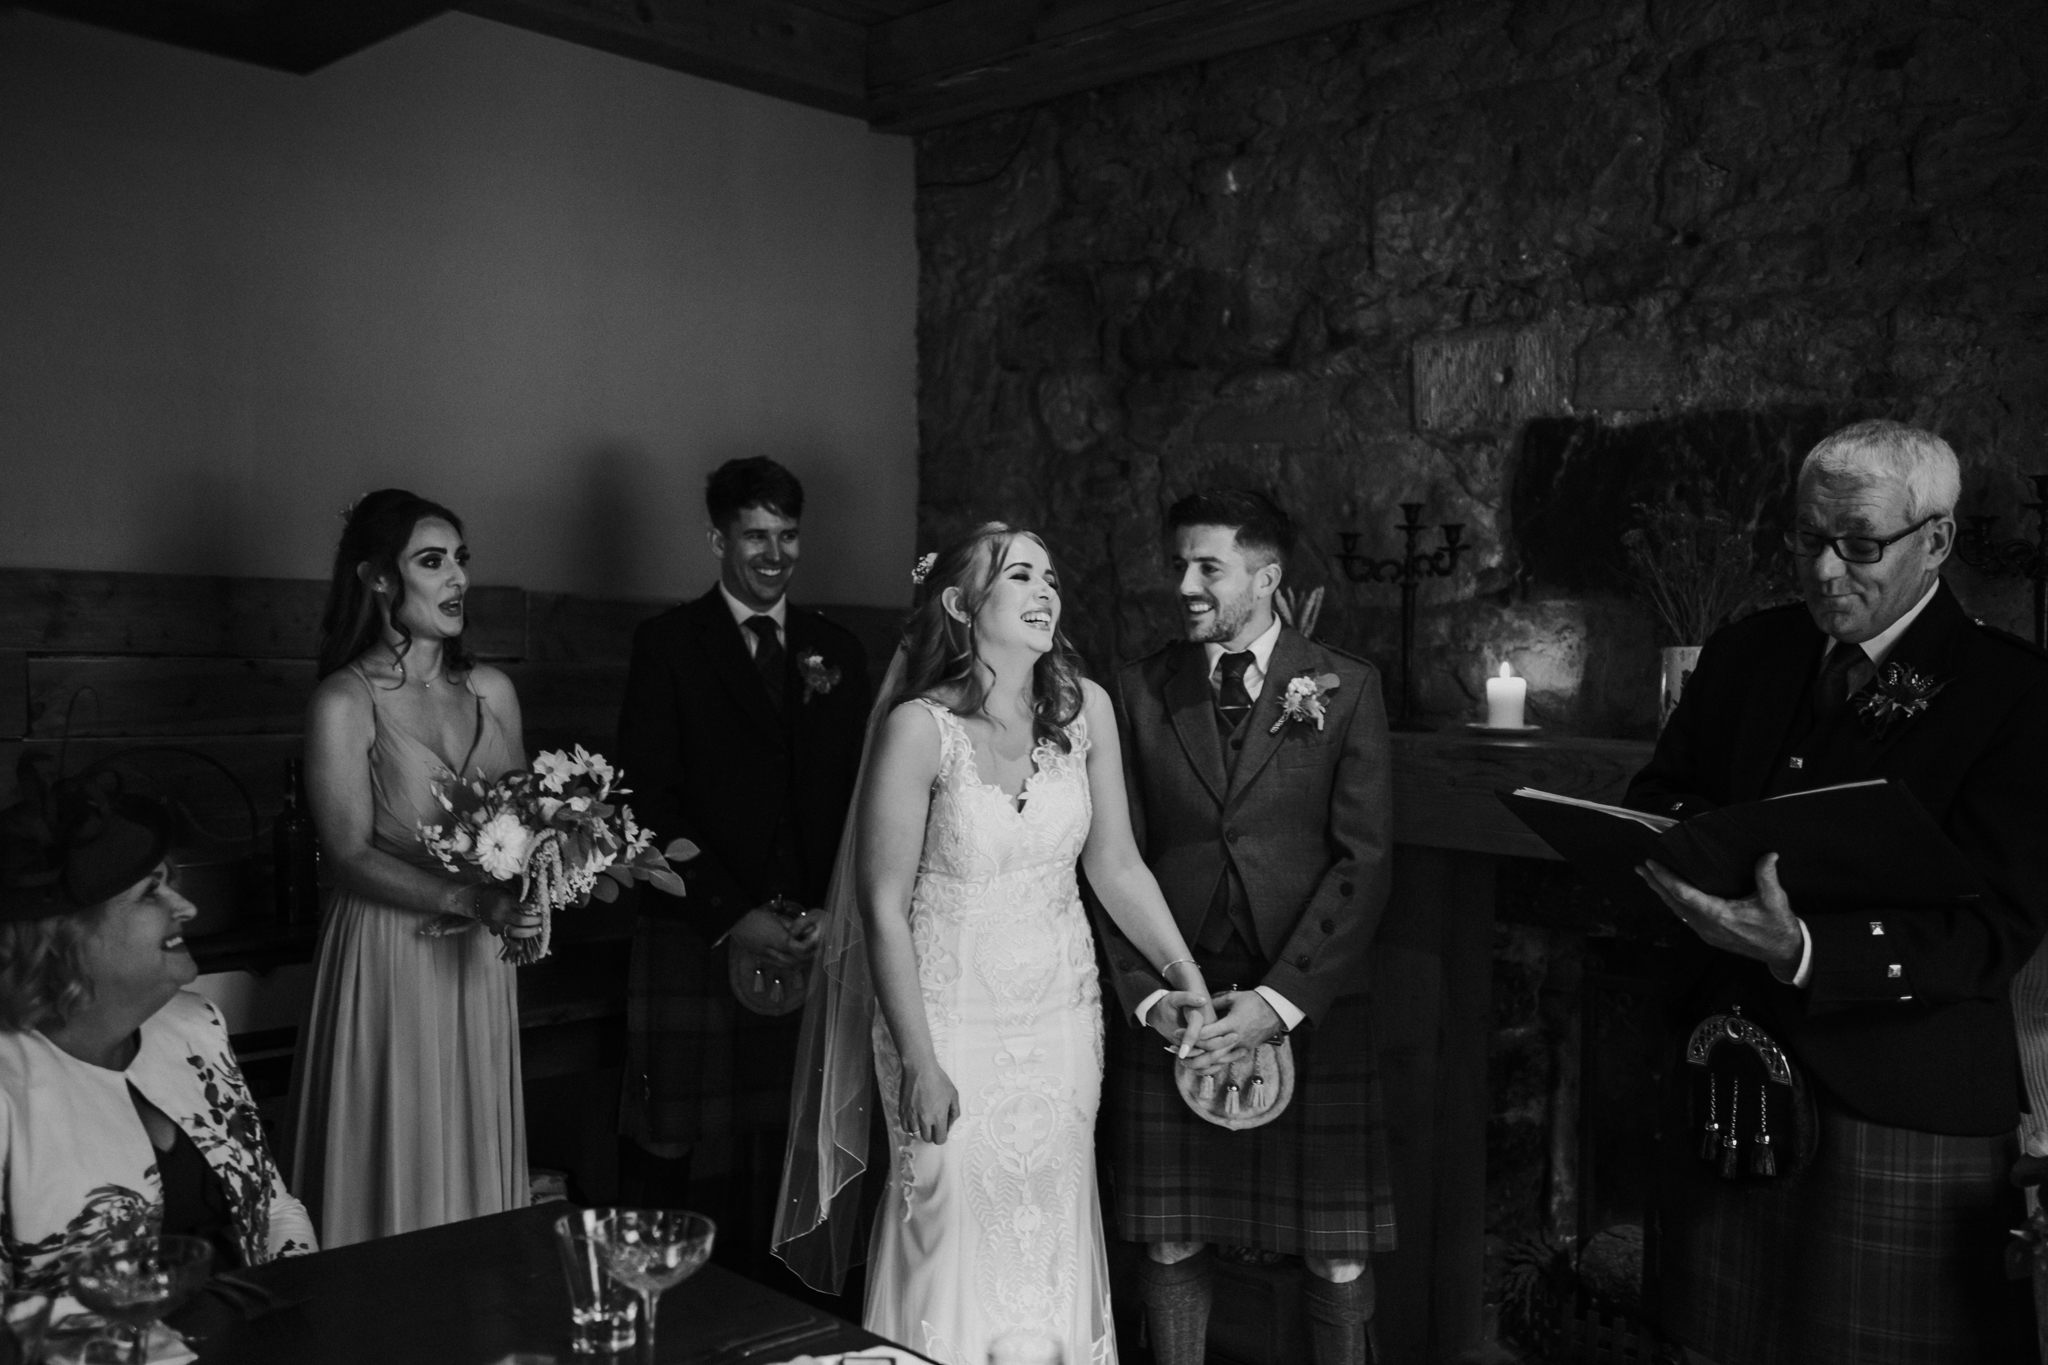 Wedding photography prices in Glasgow